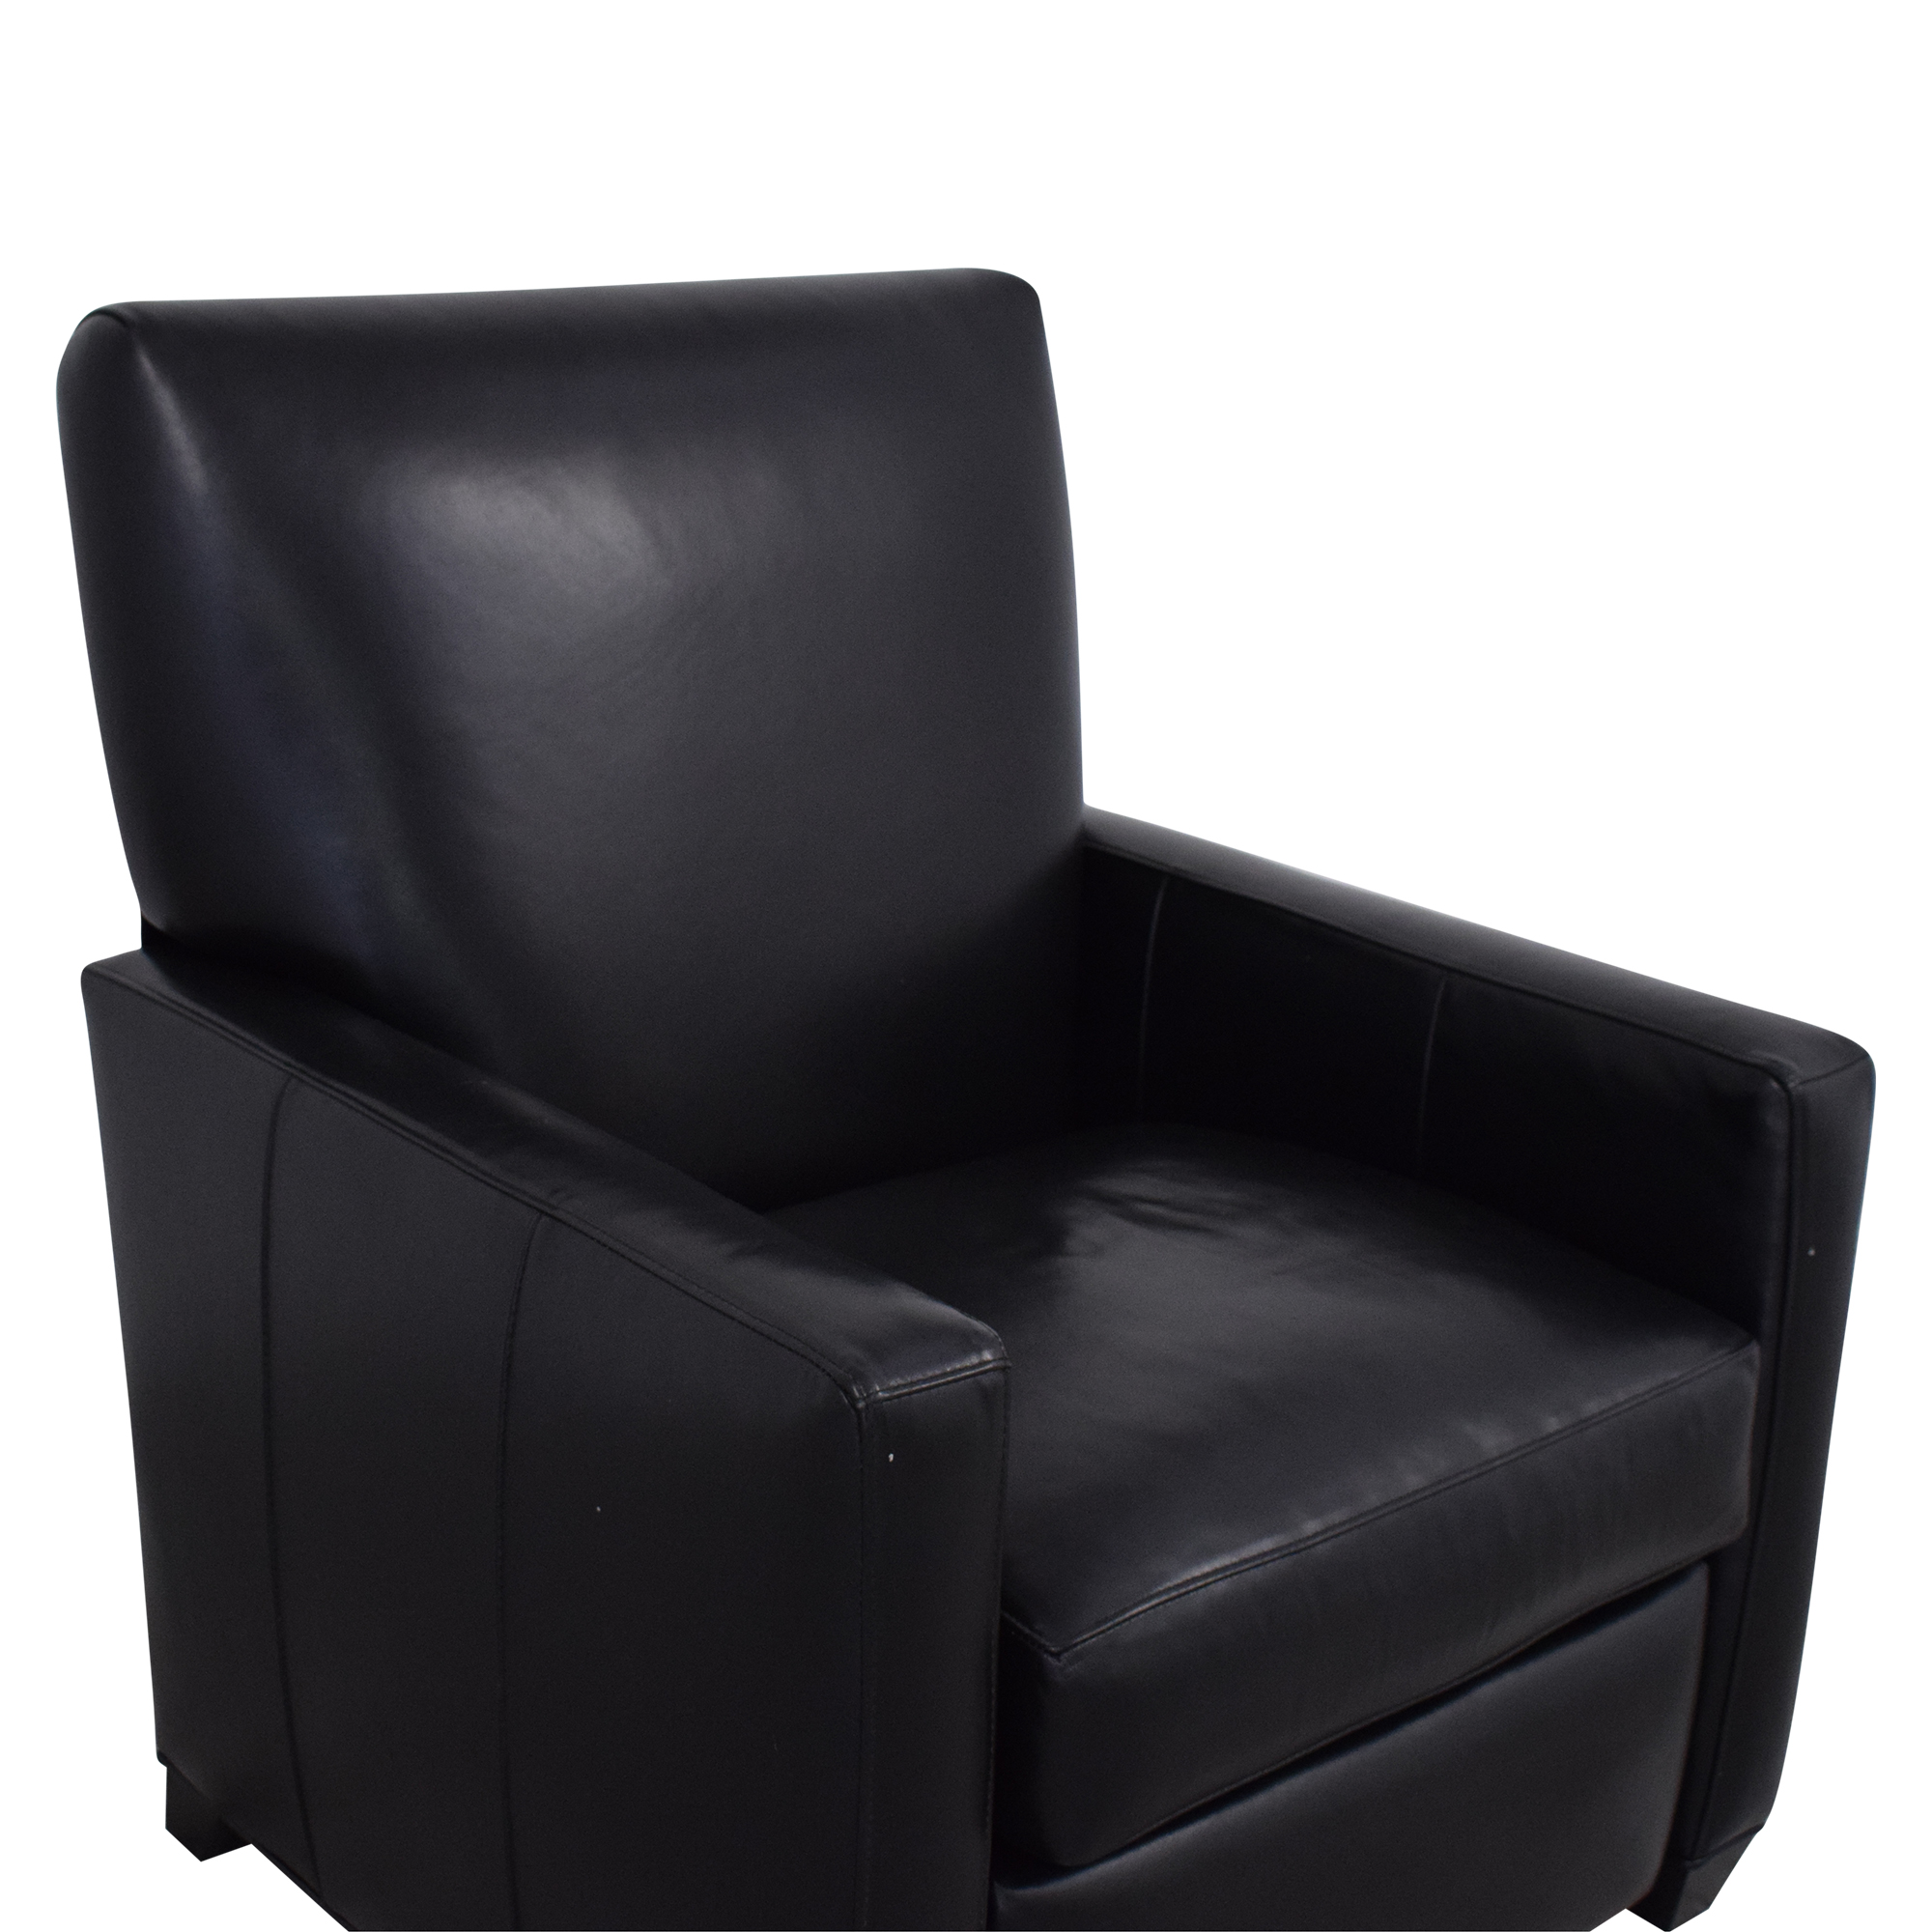 Crate & Barrel Crate & Barrel Tracy Leather Recliner for sale